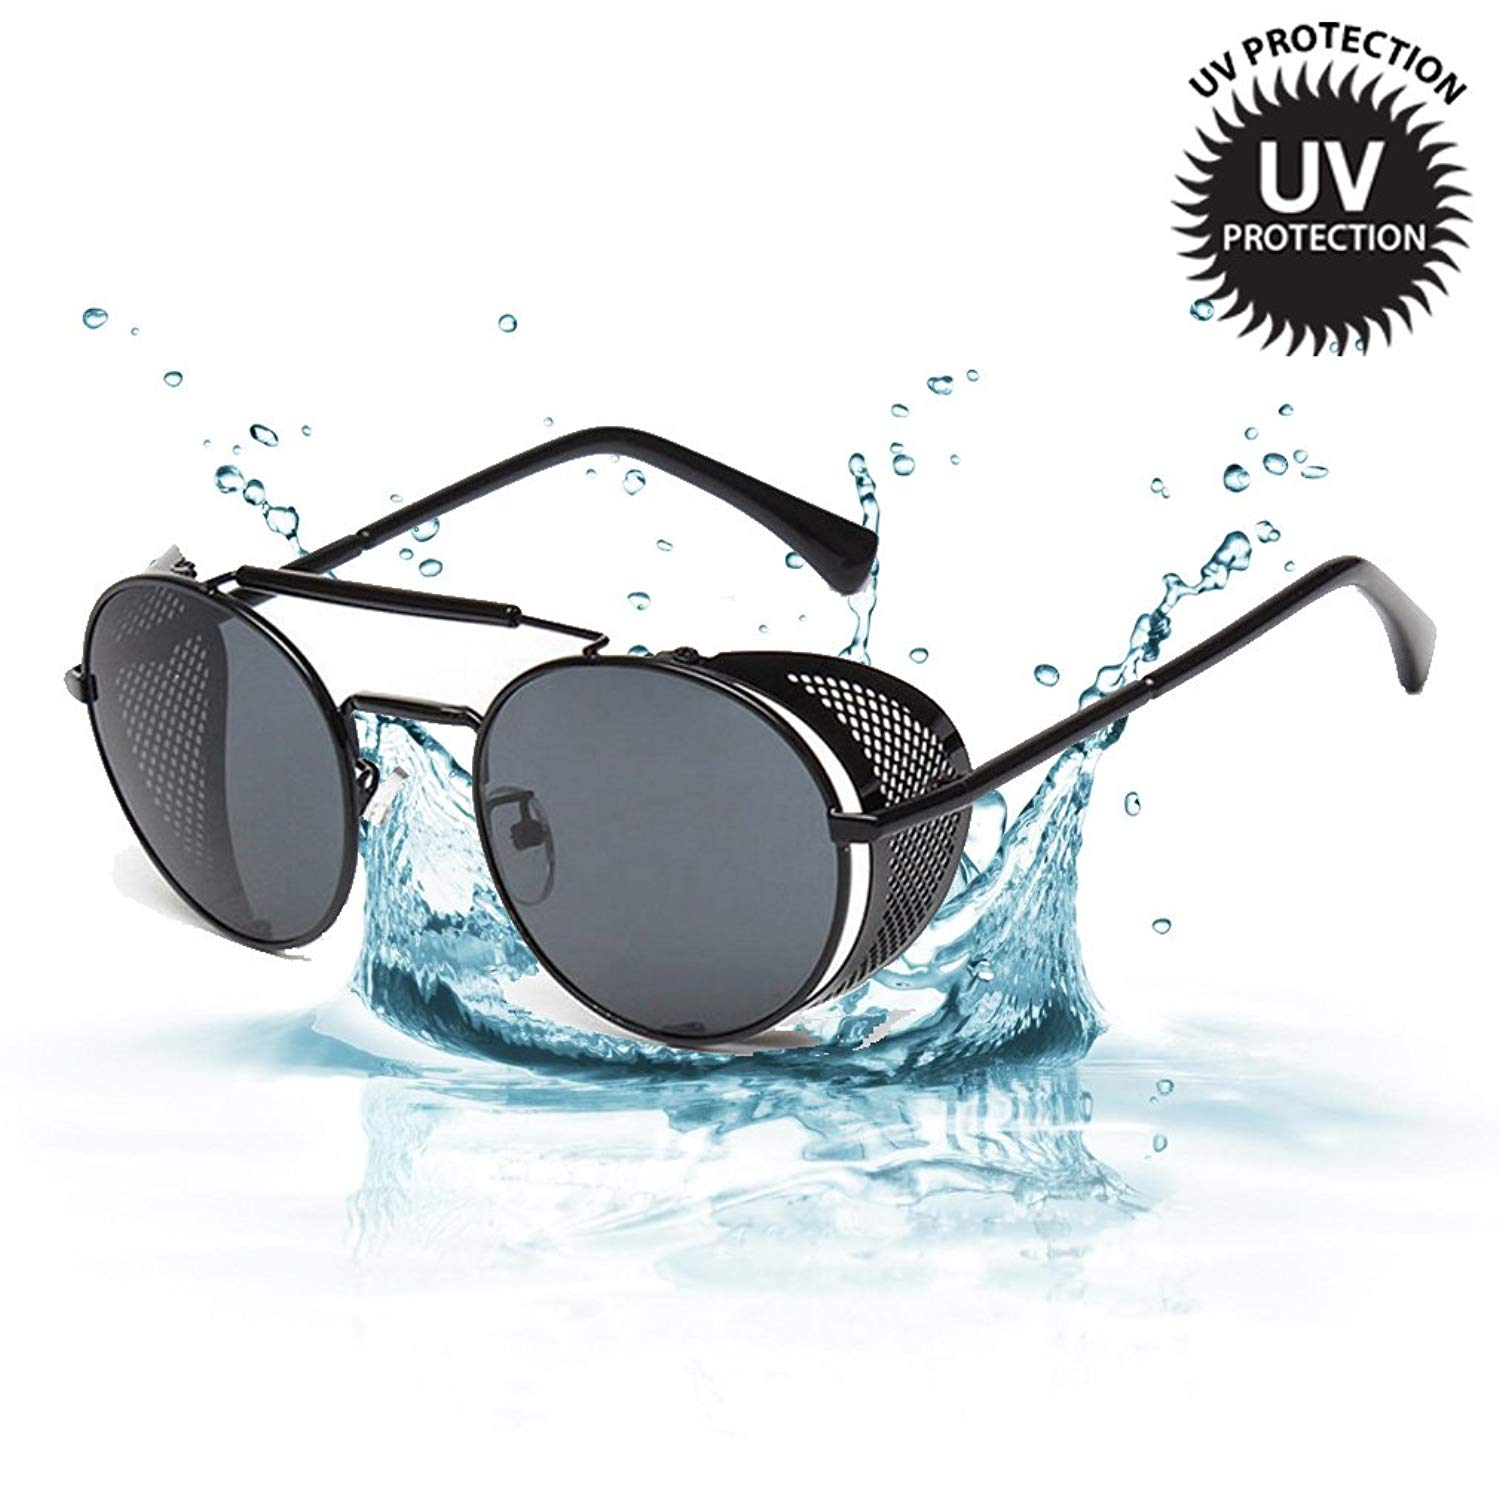 d7a2199ad6f Get Quotations · Sunglasses Side Shield Steampunk Vintage Cool UV  Protection Round Glasses For Women Men